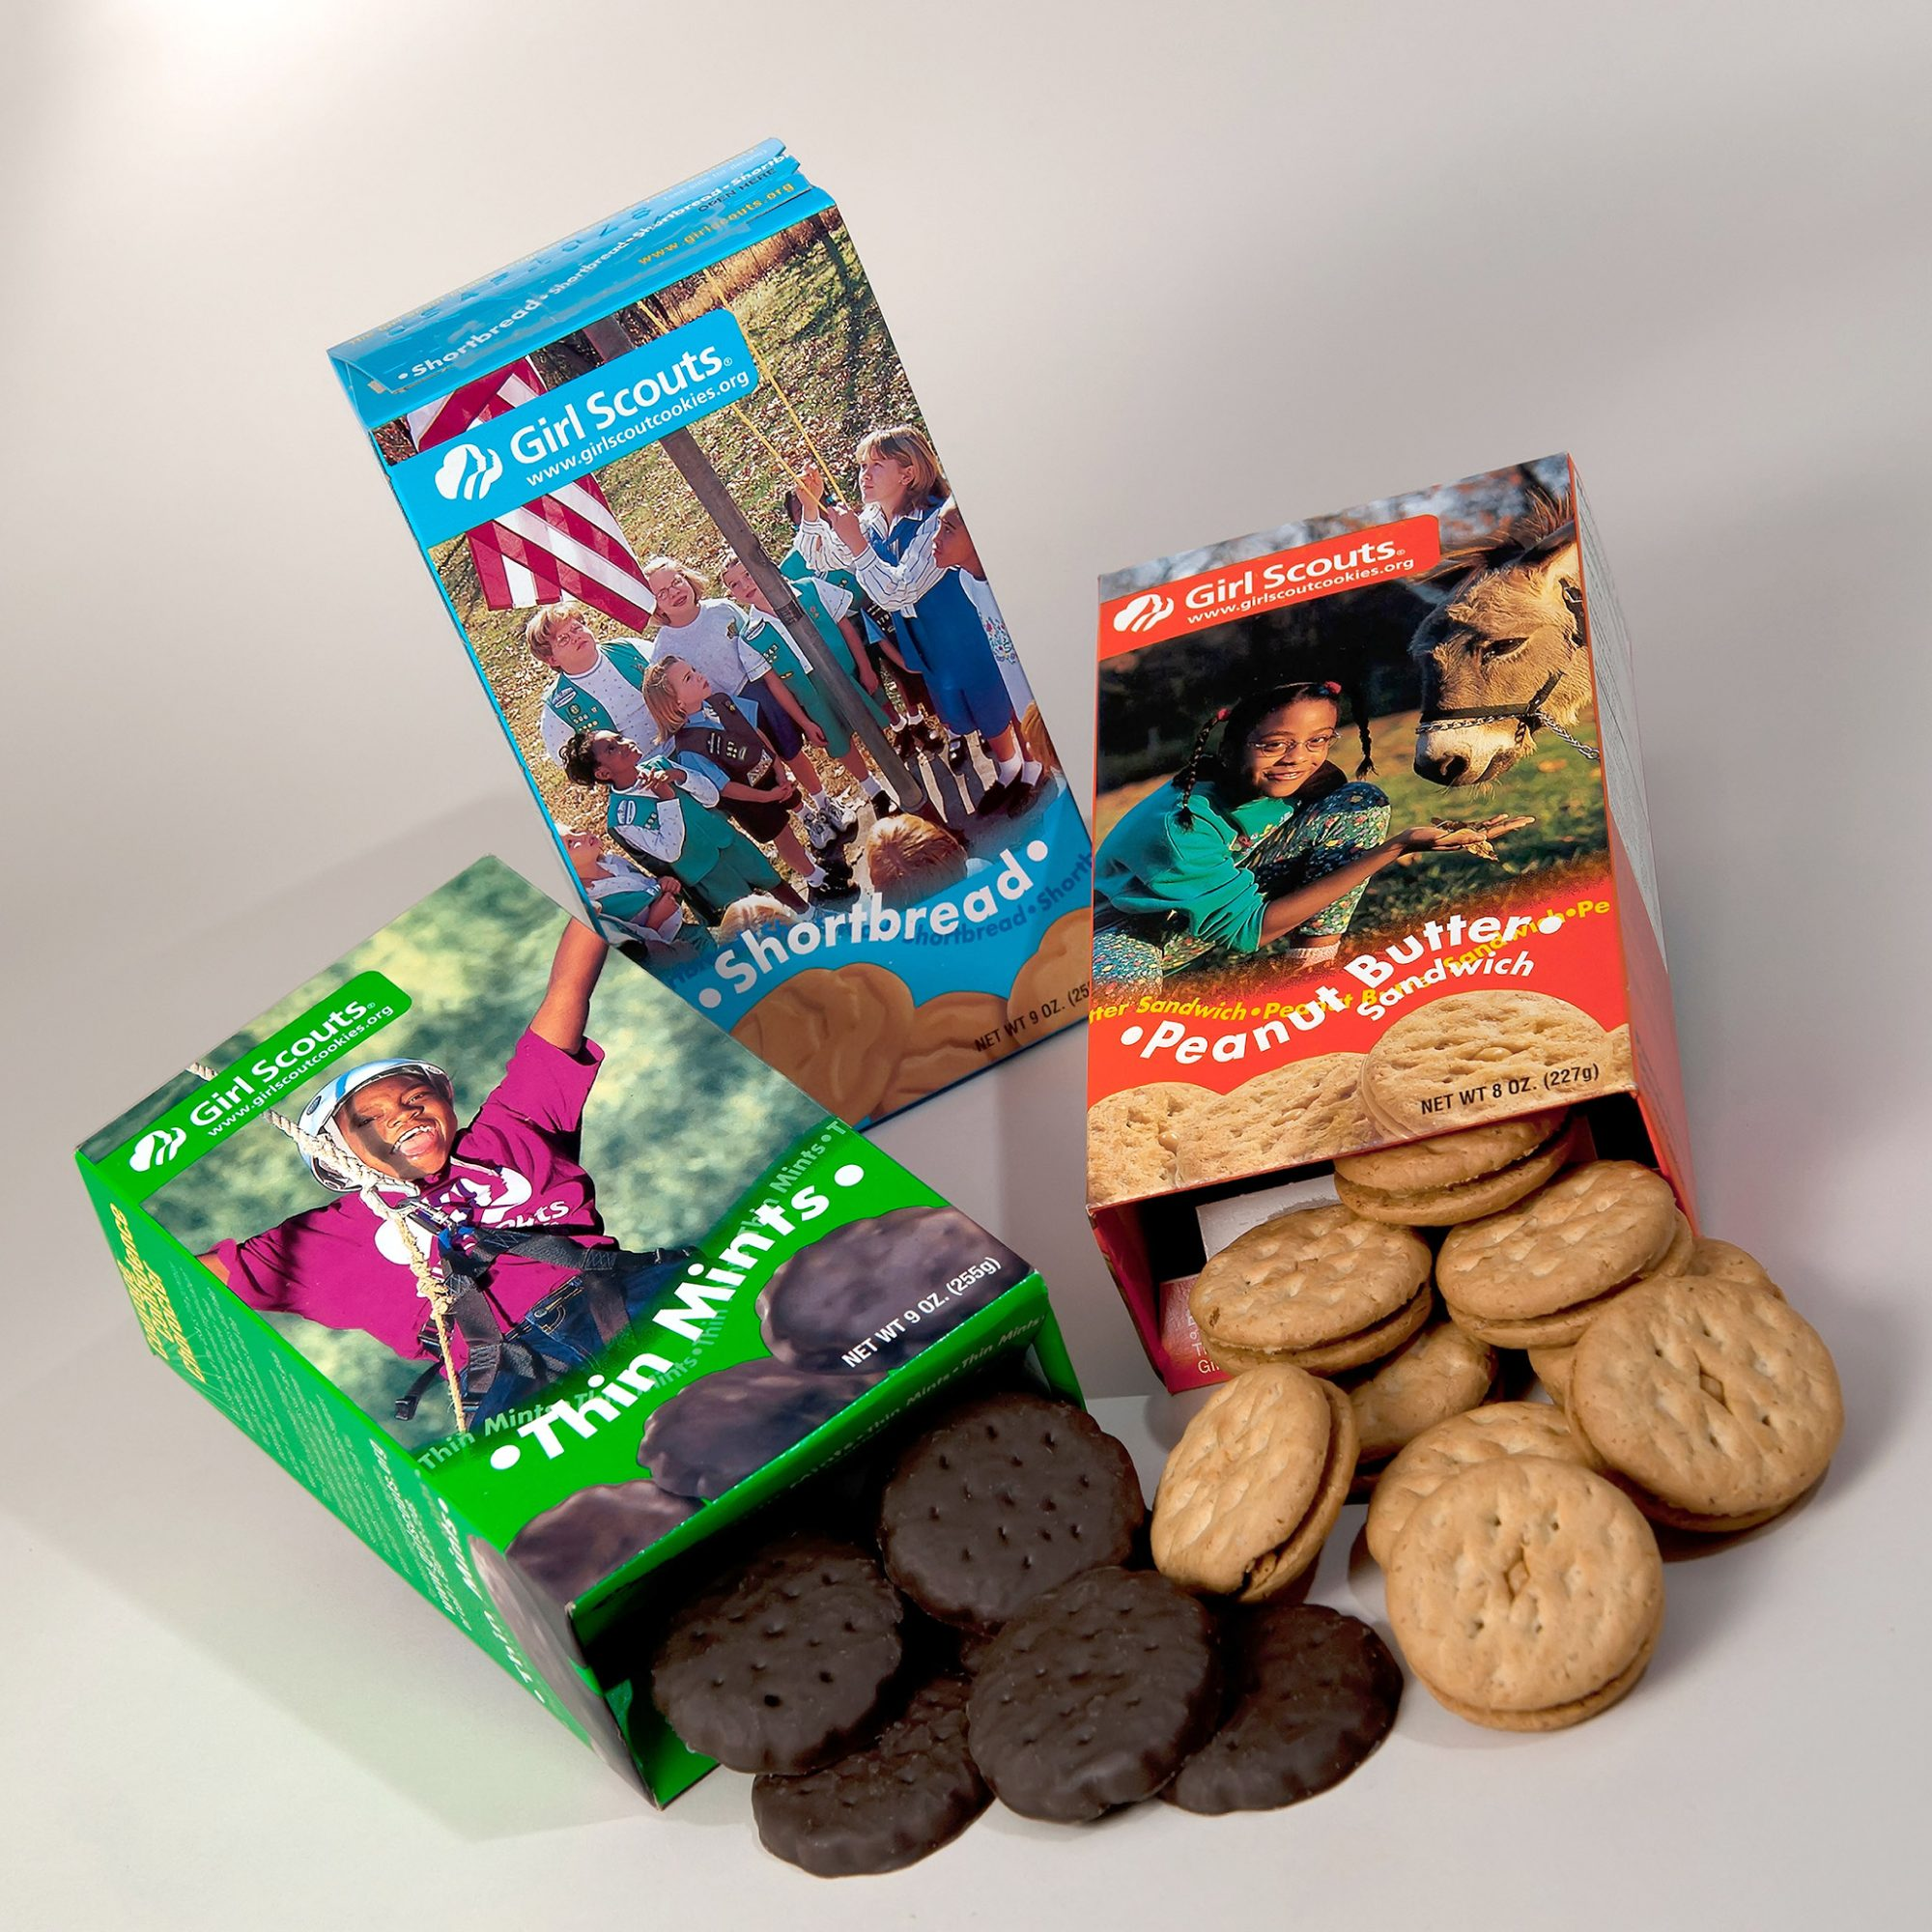 FWX GIRL SCOUT COOKIES CHOCOLATE MILK